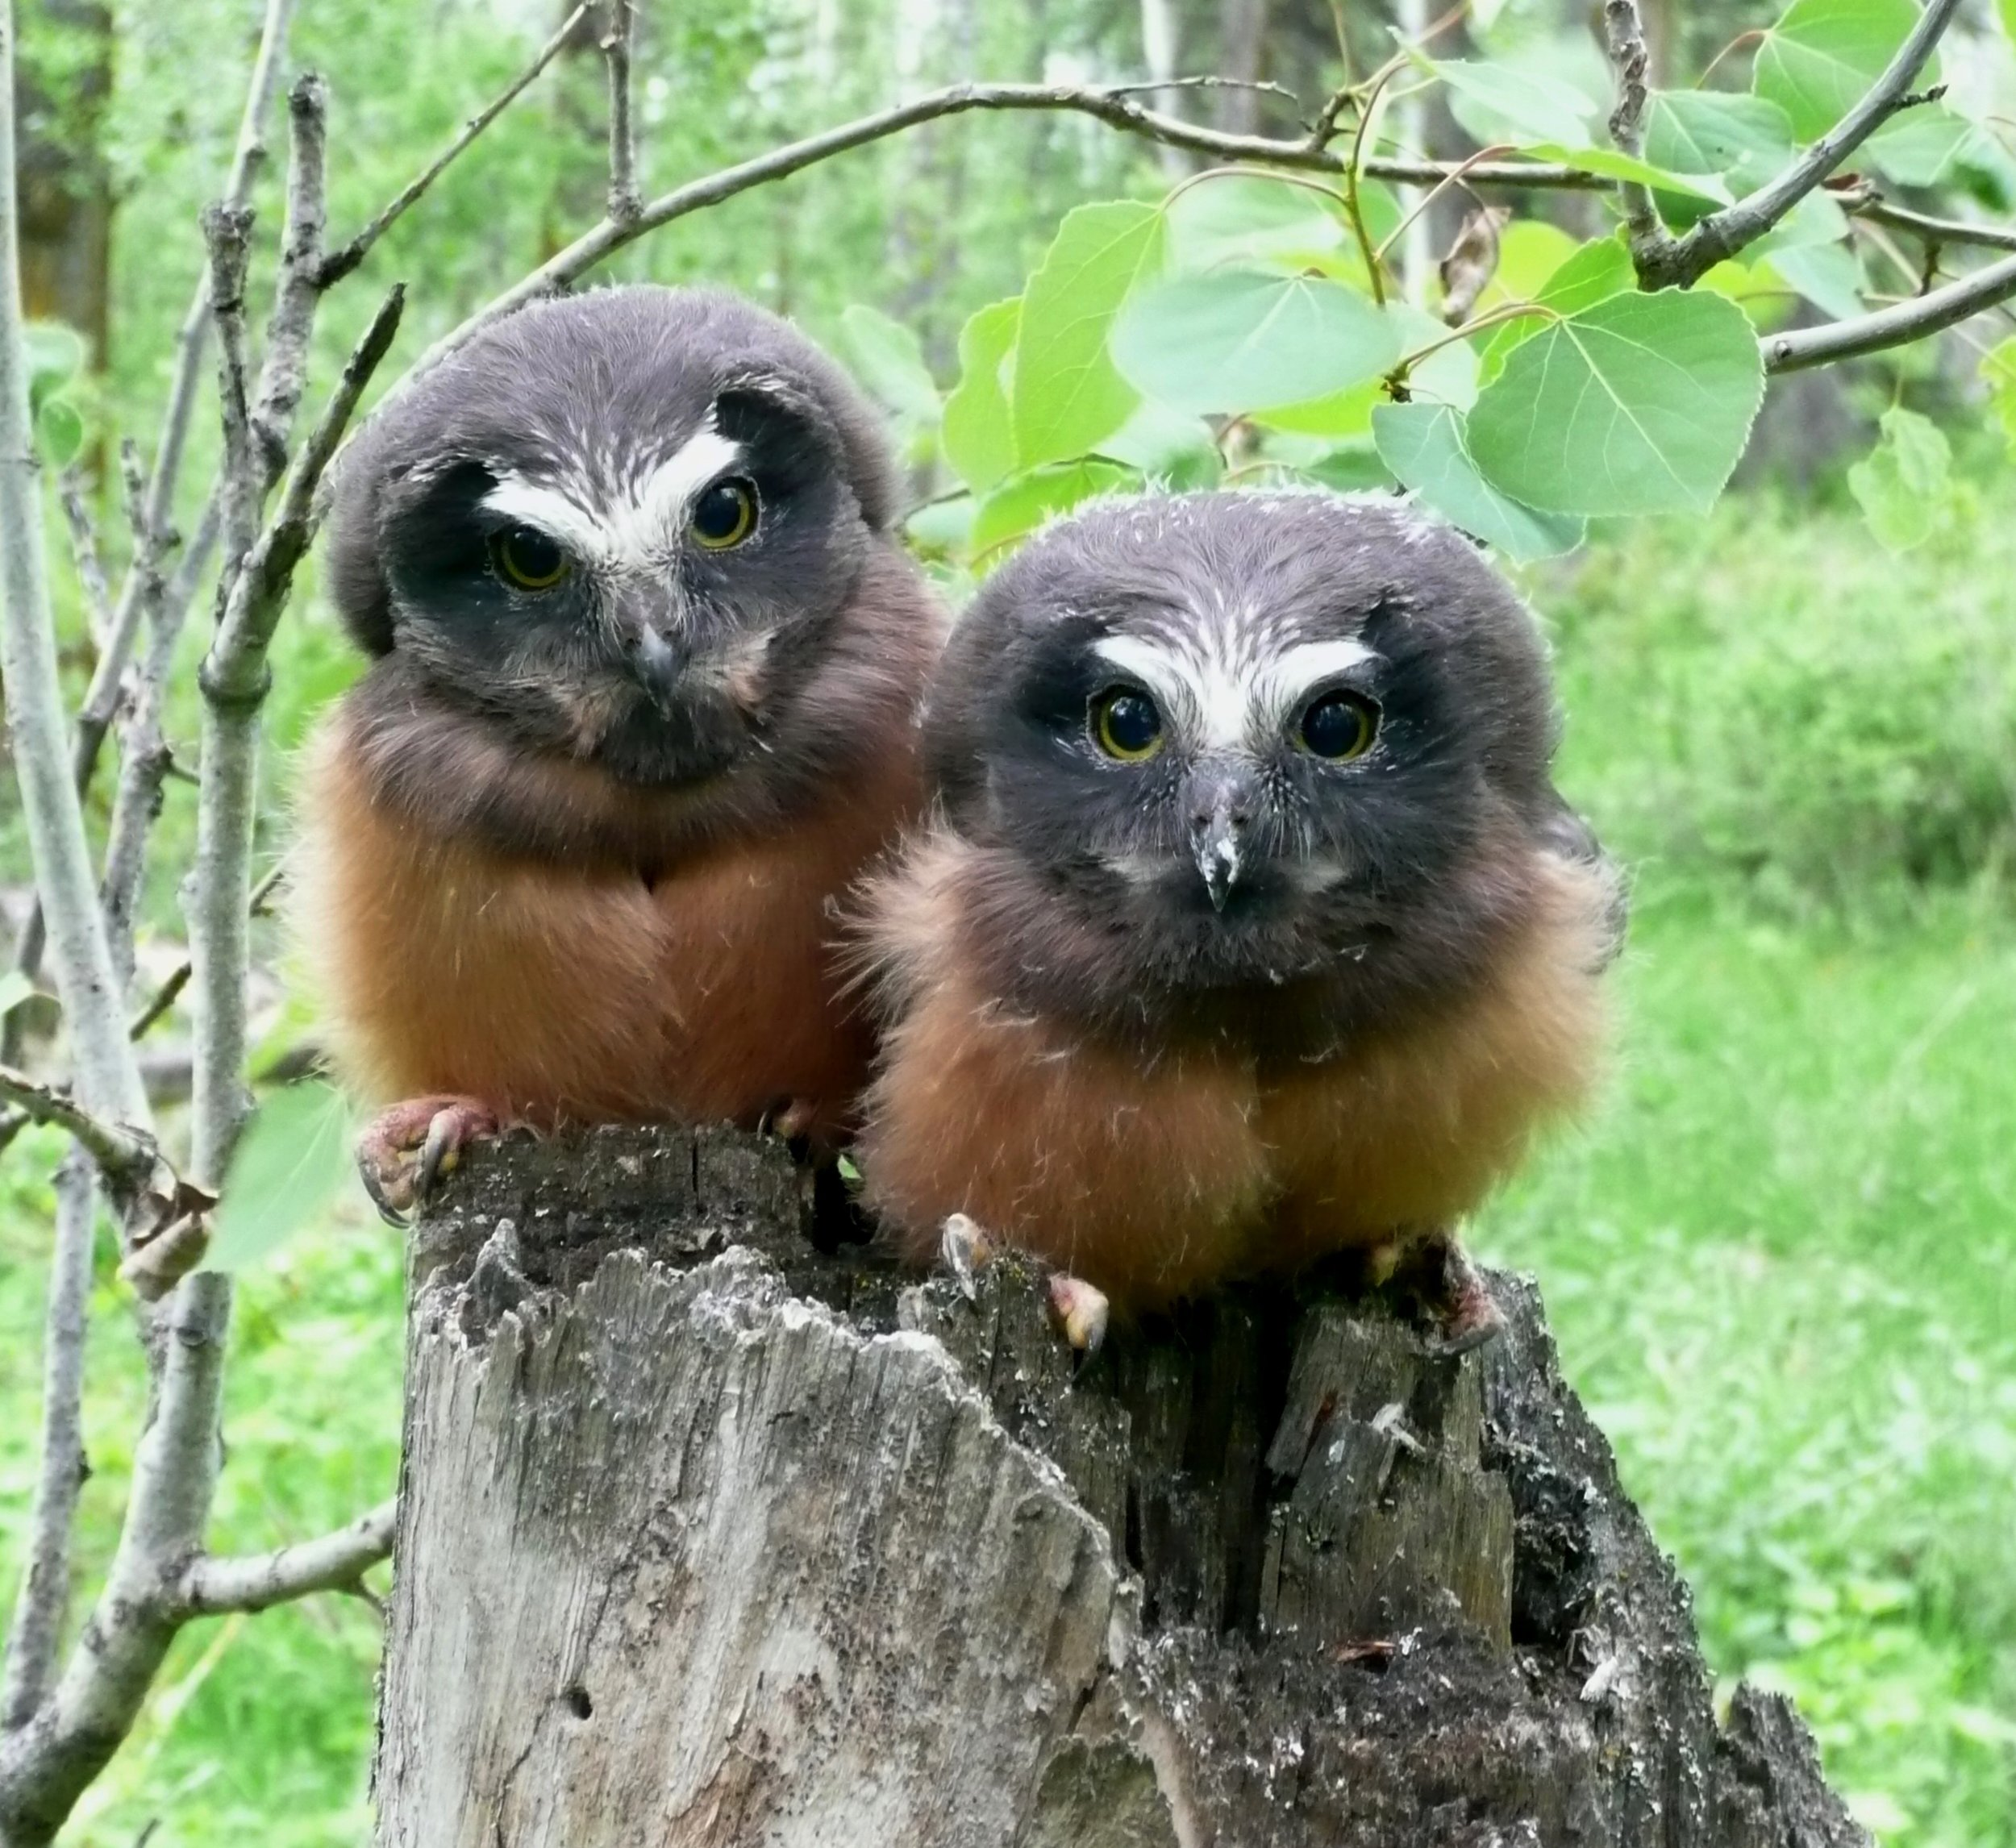 Juvenile Saw-whet Owls Photo by Marg Reine